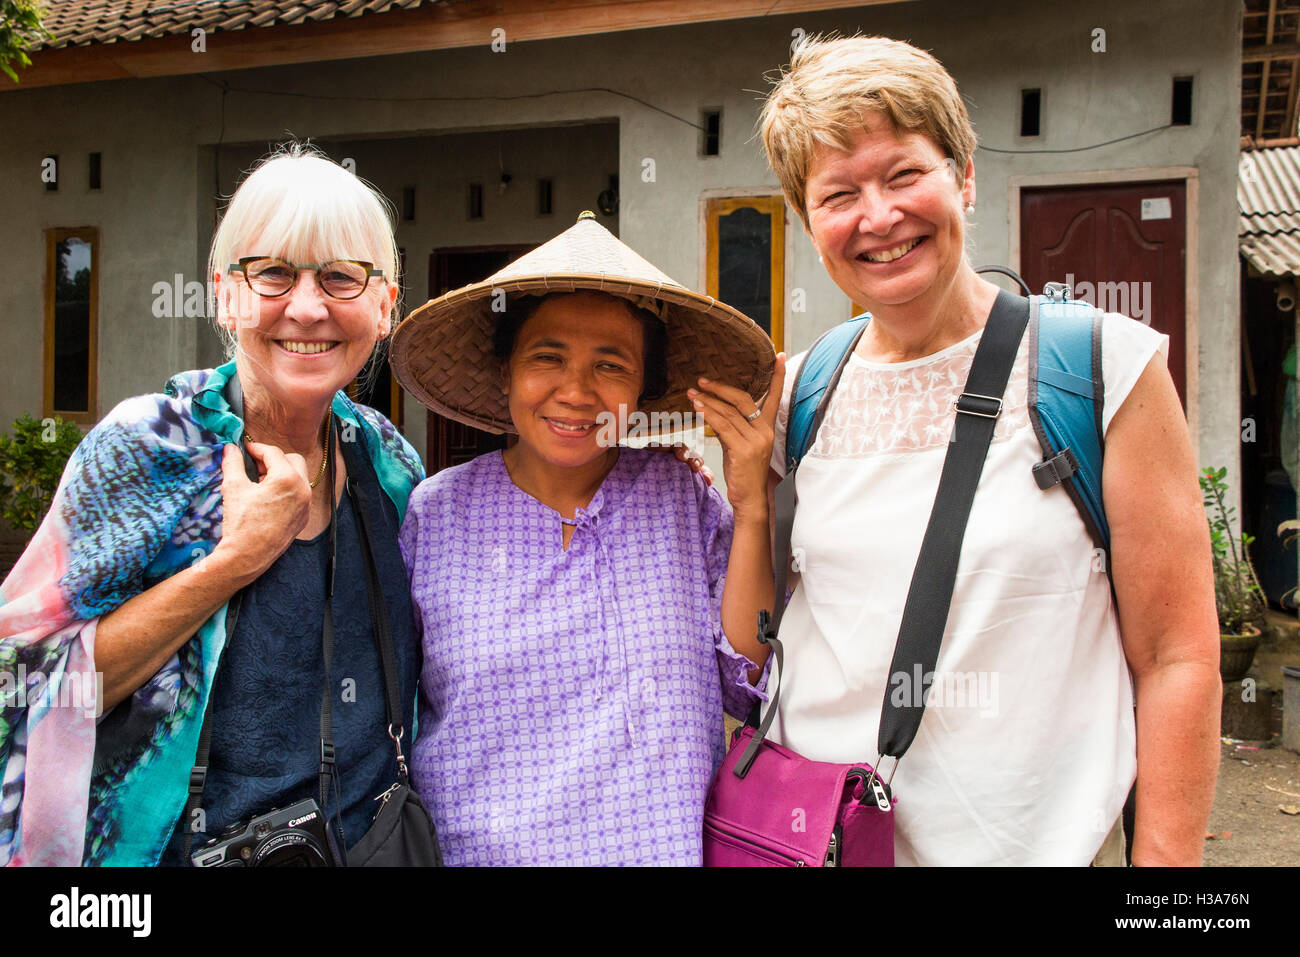 Indonesia, Lombok, Mantang, rural village, woman wearing conical hat with western tourists - Stock Image